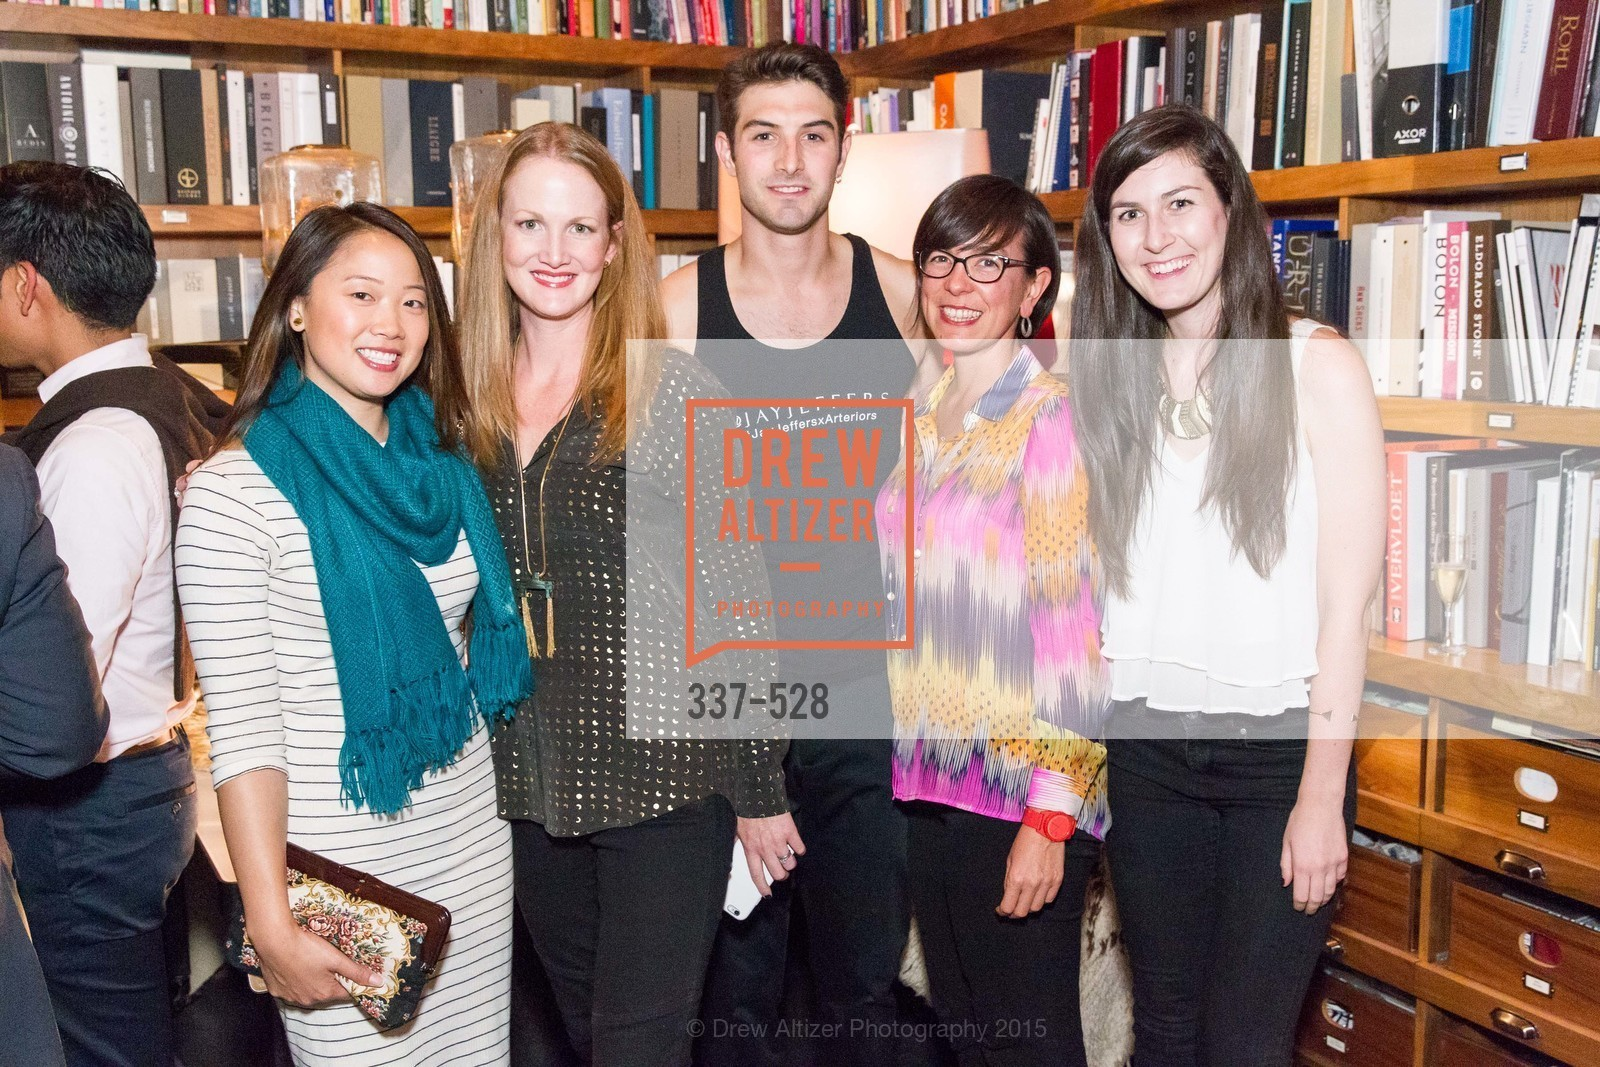 Lynn Trinh, Jennifer Jones, Nicholas Korkos, Kyoko Jackson, Anna Warnken-Brill, Jay Jeffers for Arteriors Launch, Jay Jeffers - The Store. 1035 Post St, November 12th, 2015,Drew Altizer, Drew Altizer Photography, full-service agency, private events, San Francisco photographer, photographer california